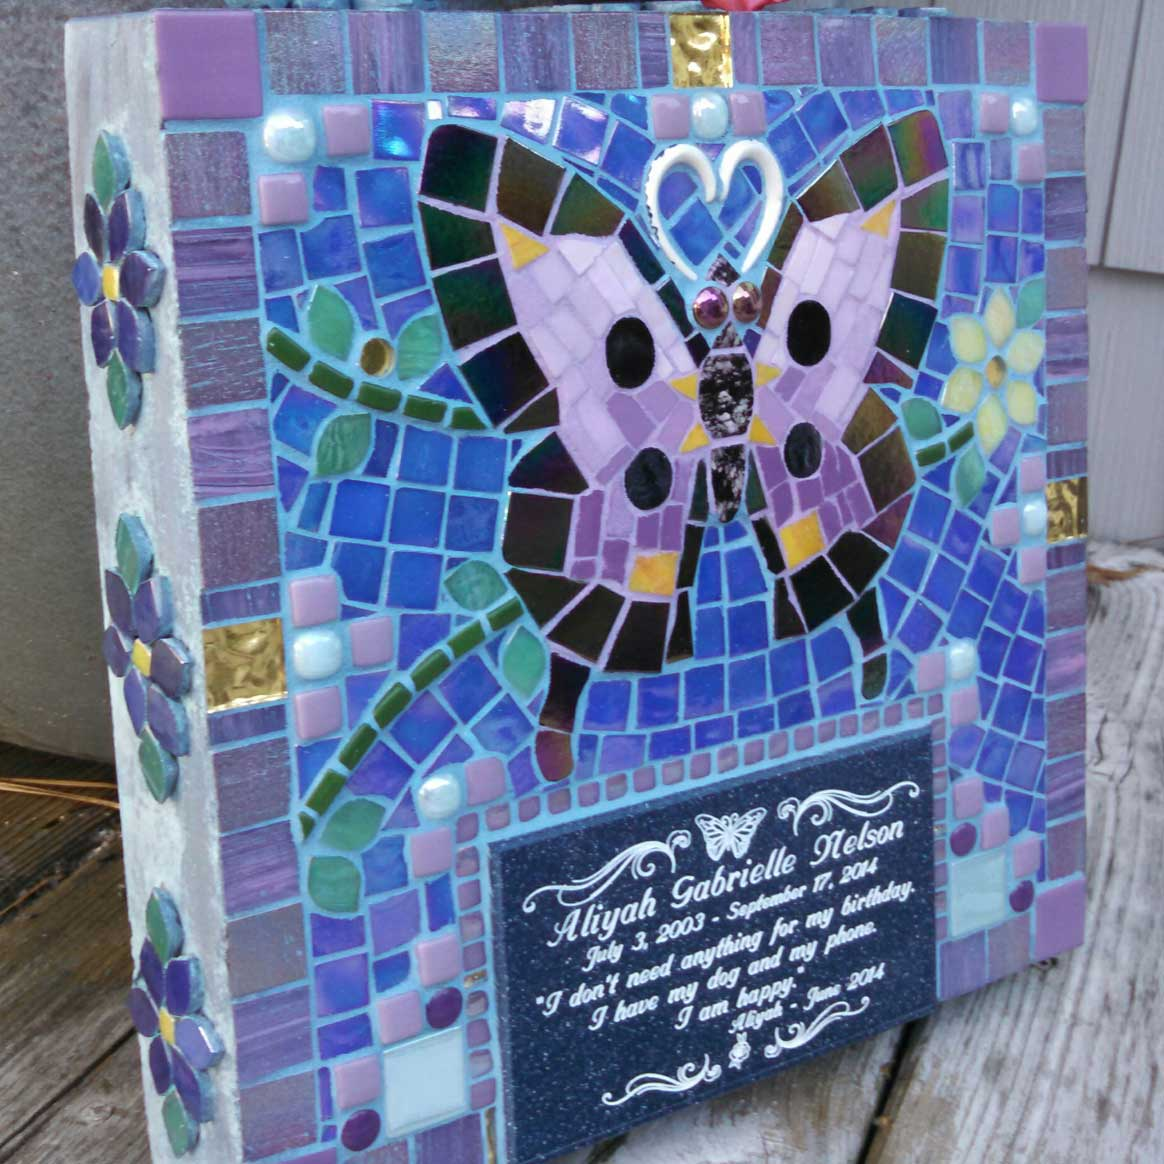 Mosaic Memorial Garden Art Stone of Aliyah's Purple Butterfly by Water's End Studio Artist Linda Solby